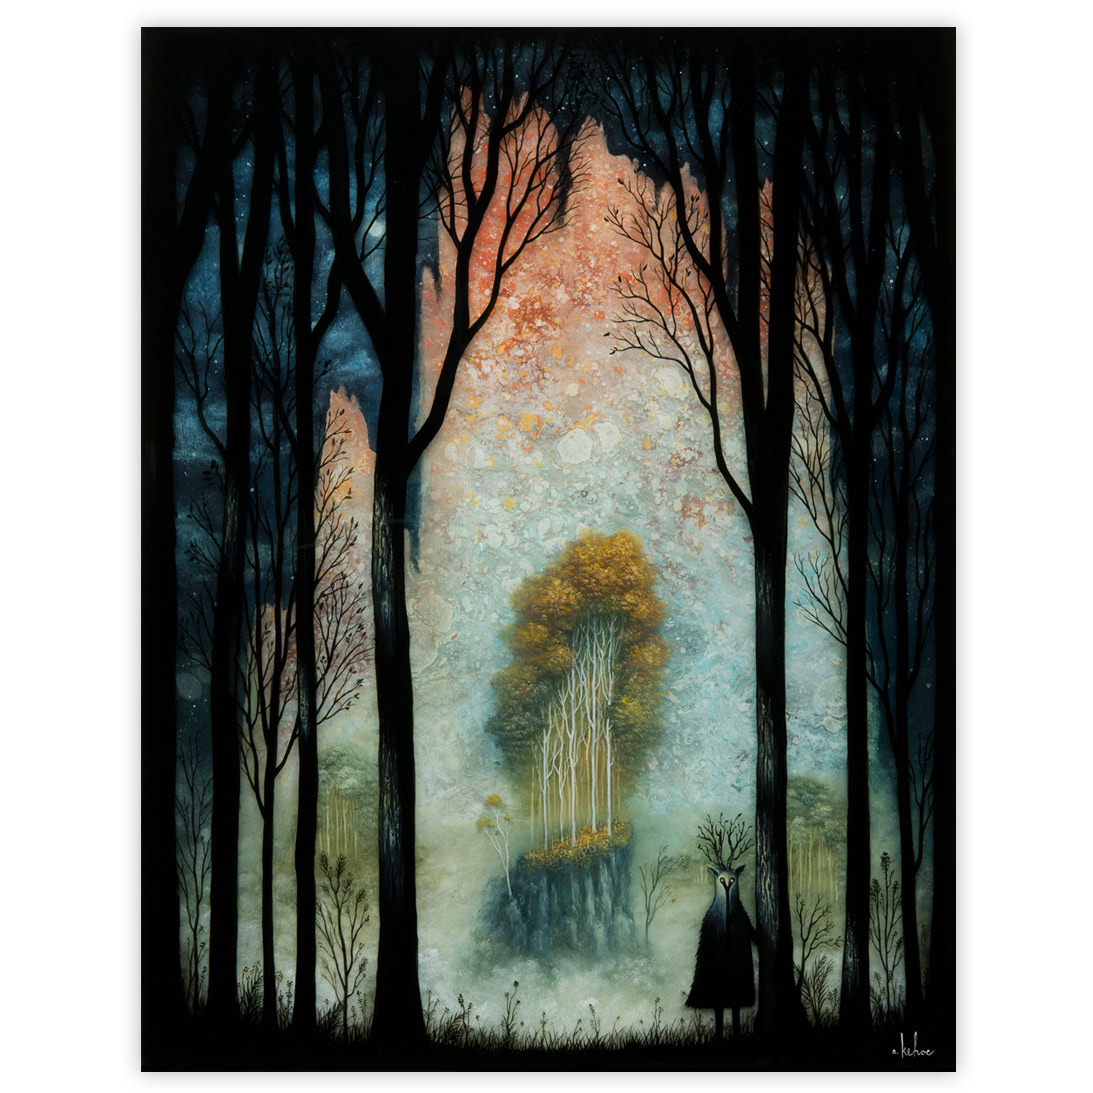 Andy Kehoe Eternal Glos of the Celestial Peaks 16 x 20 Inches Acrylic, oil and resin in cradled wood panel $3,400